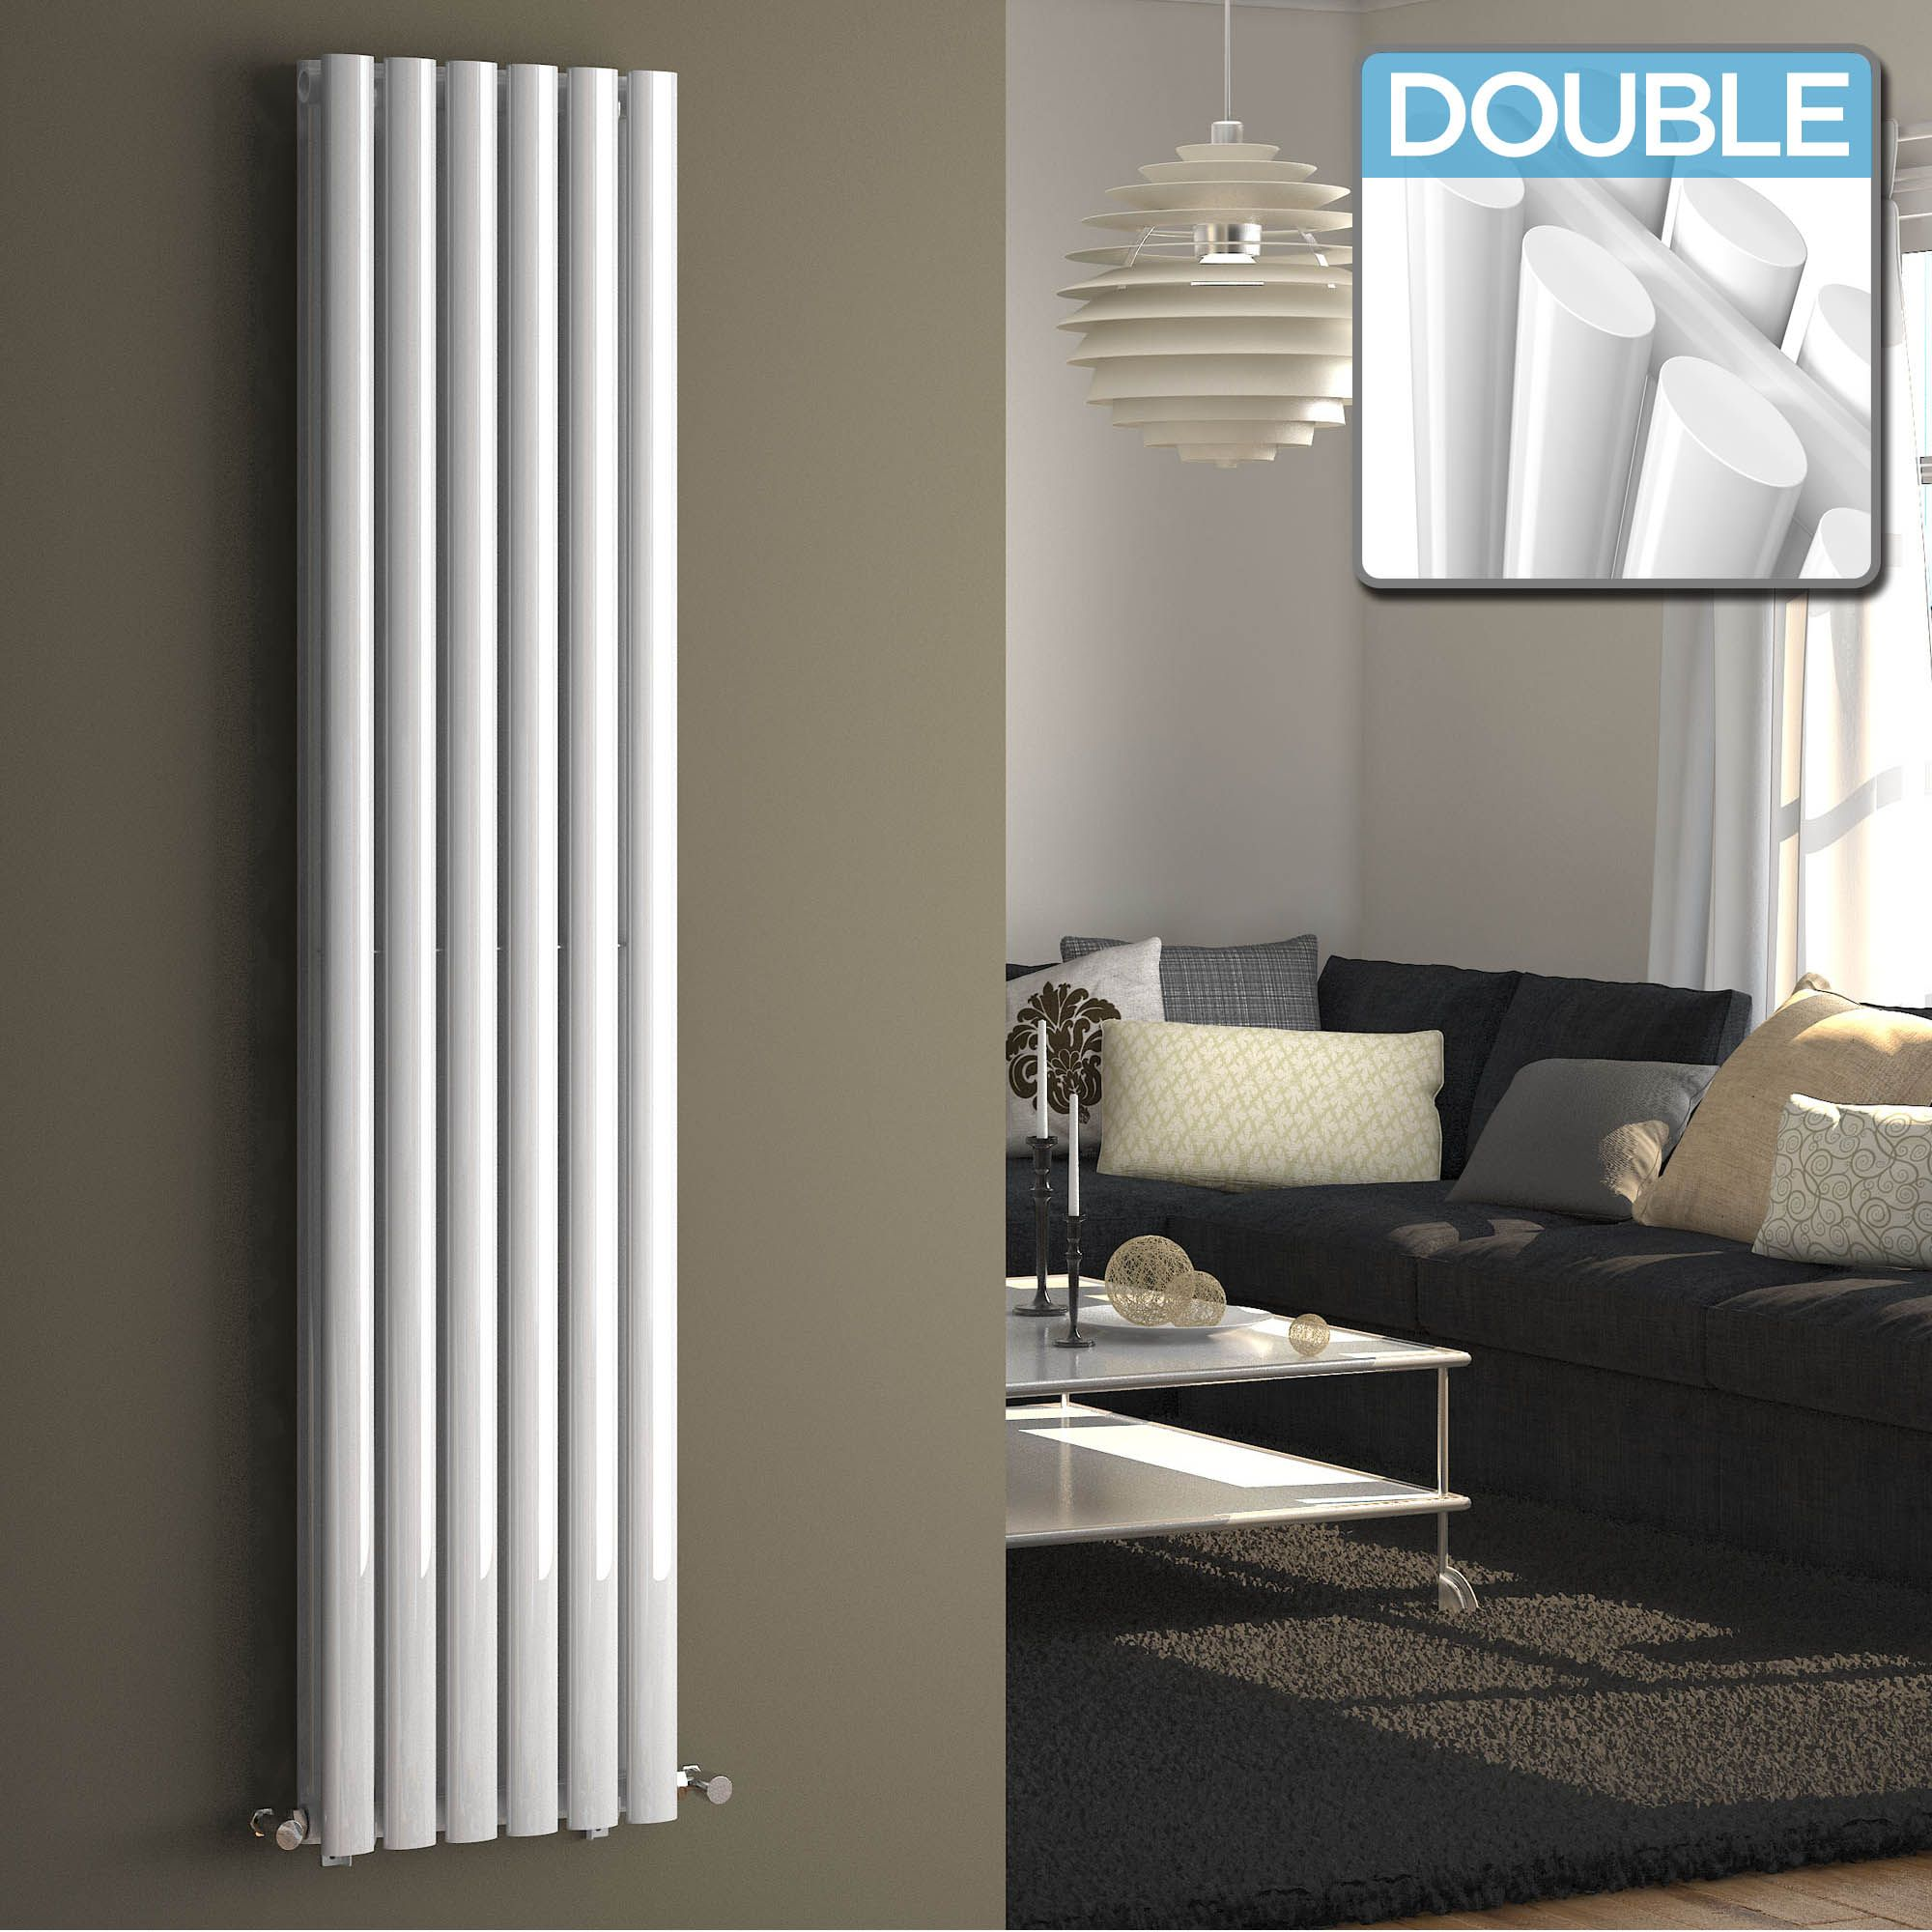 superb Vertical Radiators For Kitchens #4: 1000+ images about Kitchen Radiators on Pinterest | Windsor, Vertical radiators and Package deal